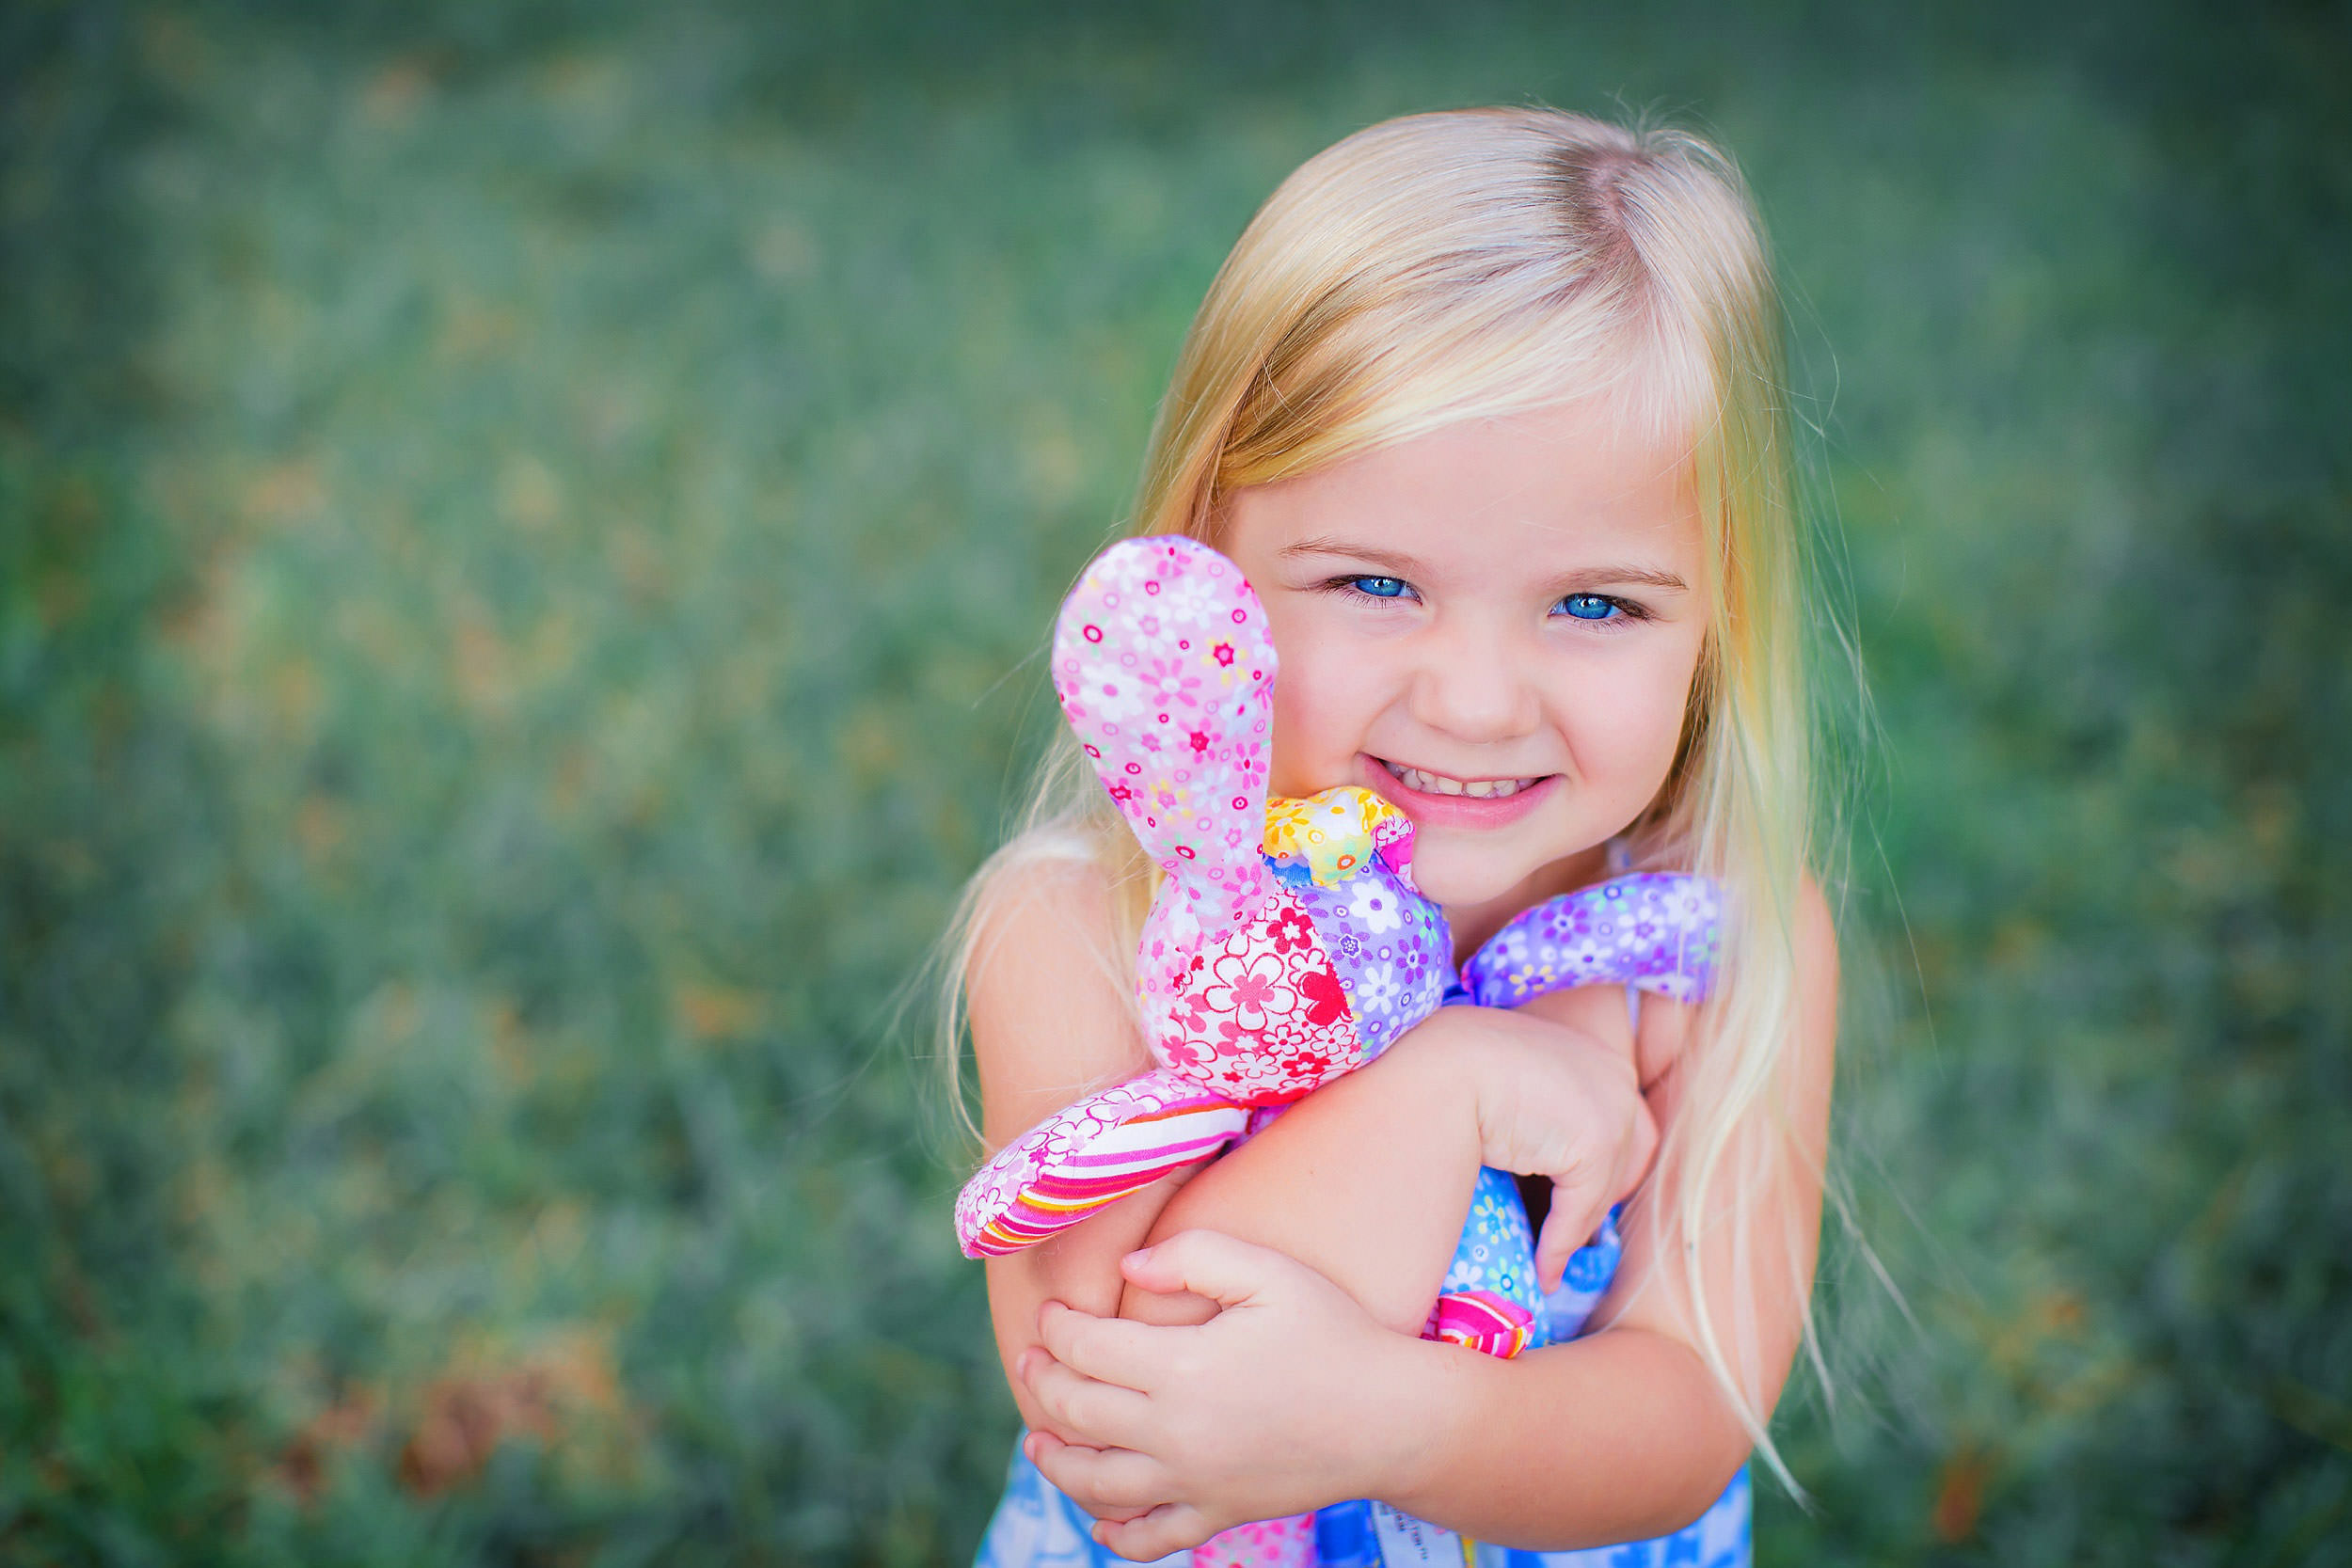 Young girl hugging favorite colorful stuffed bunny by family photographer spryART photography